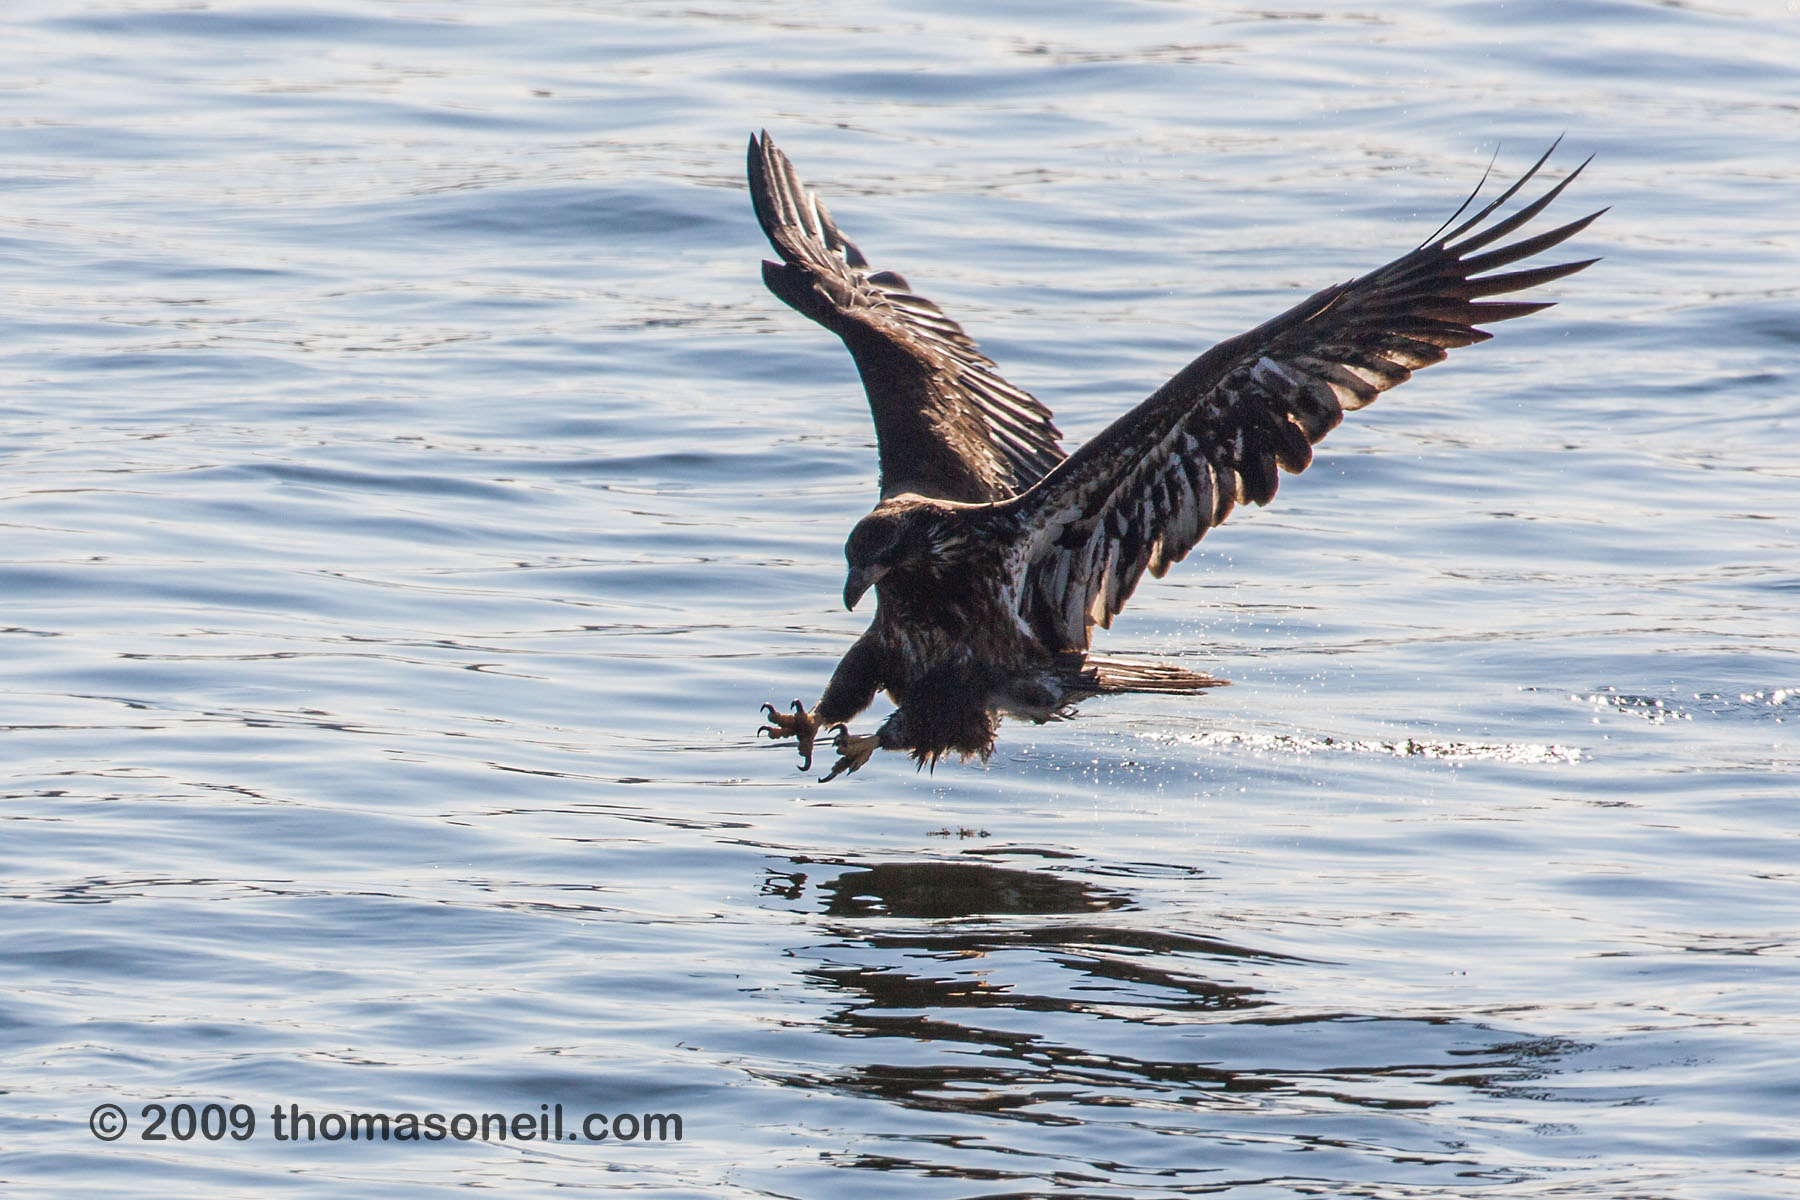 Juvenile bald eagle snatching fish from the Mississippi River, Keokuk, Iowa, January 2009.  Click for next photo.